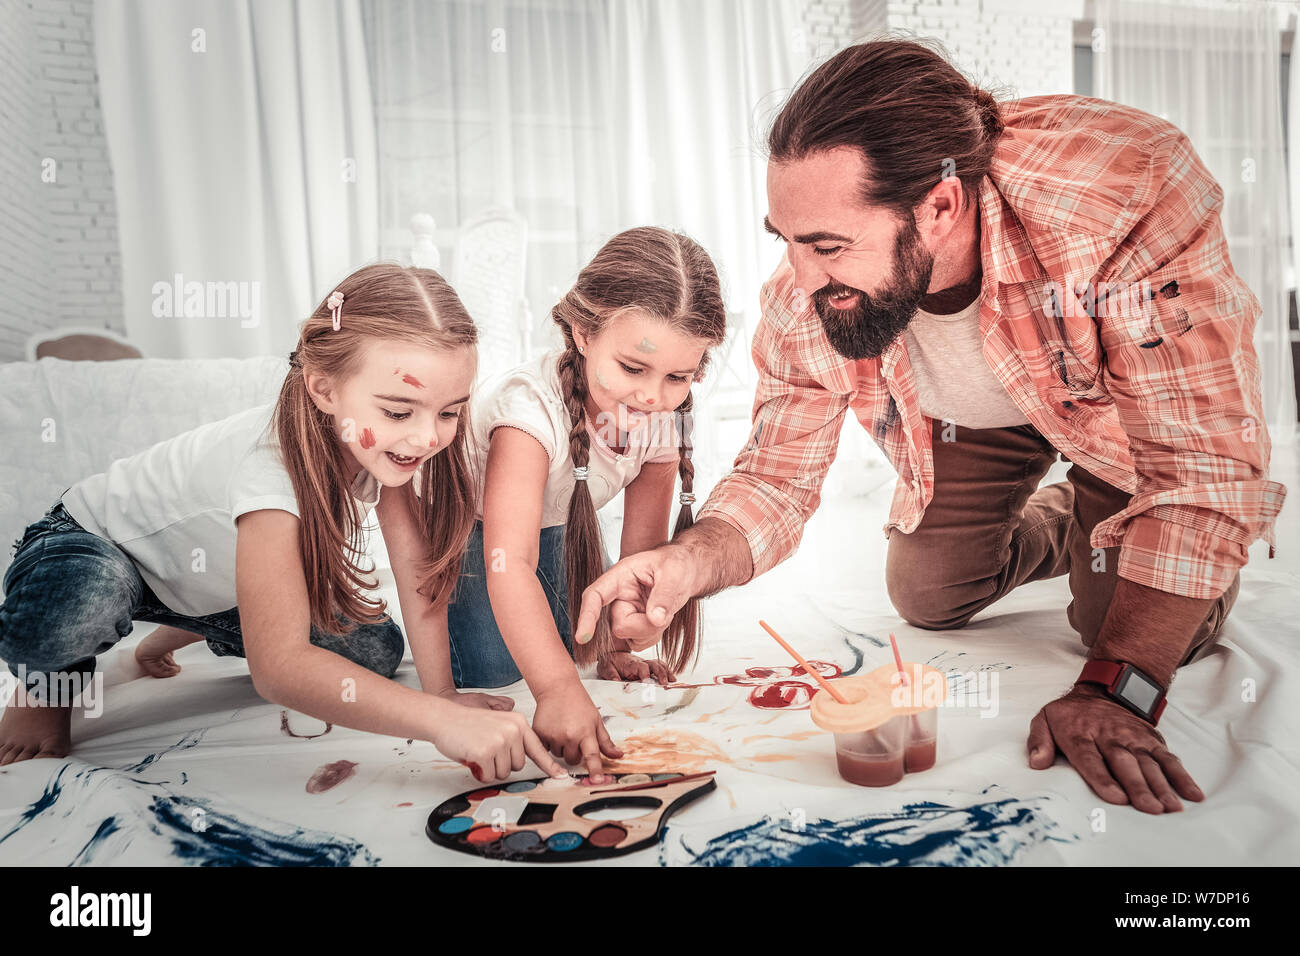 Good young father spending time together with his children painting Stock Photo